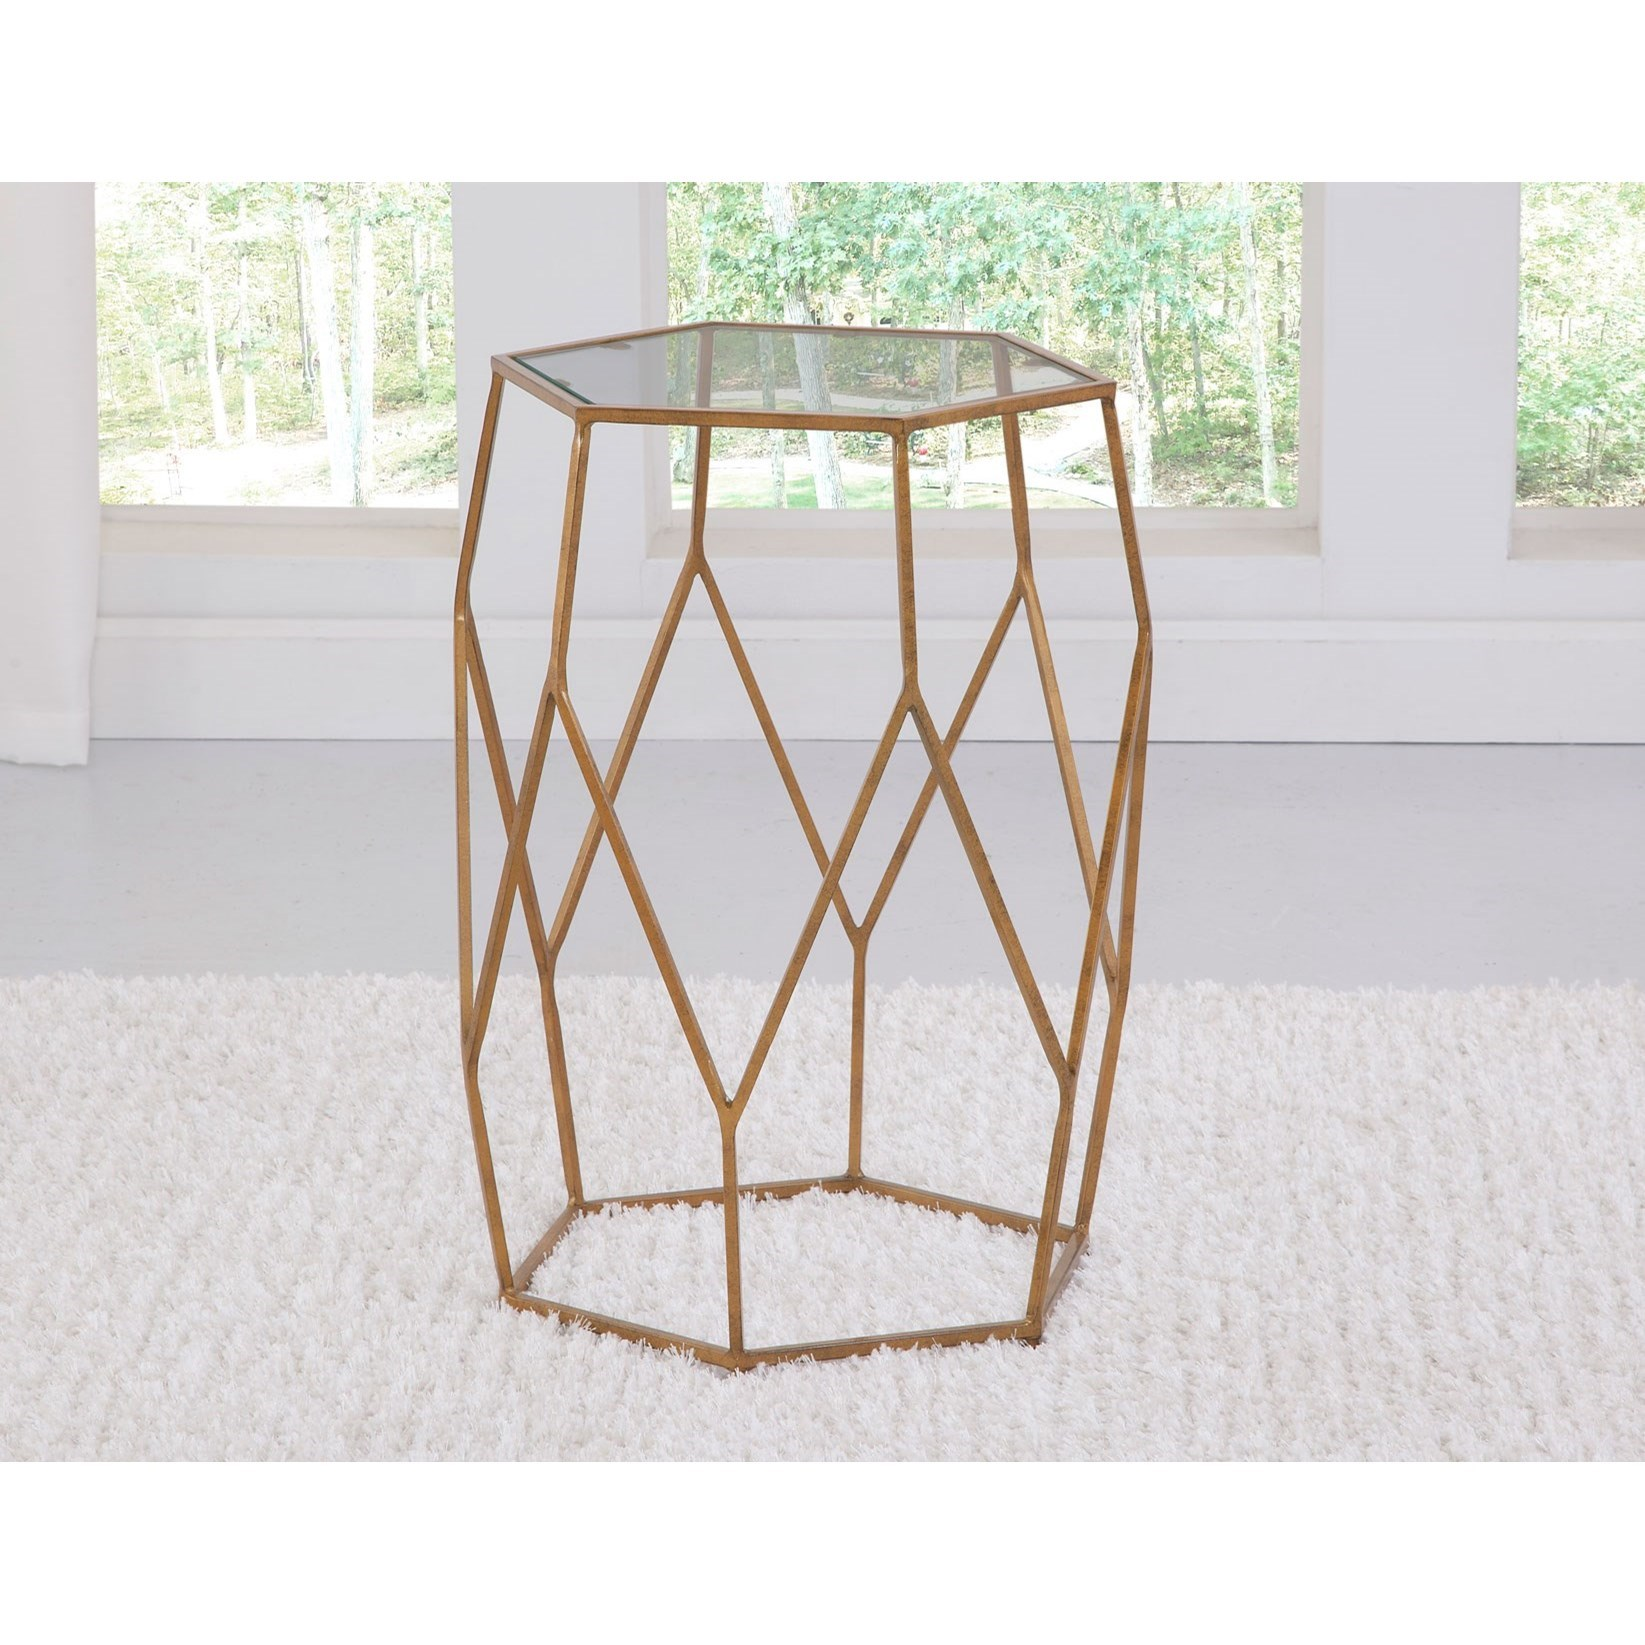 Roxy Chairside Table by Steve Silver at Walker's Furniture